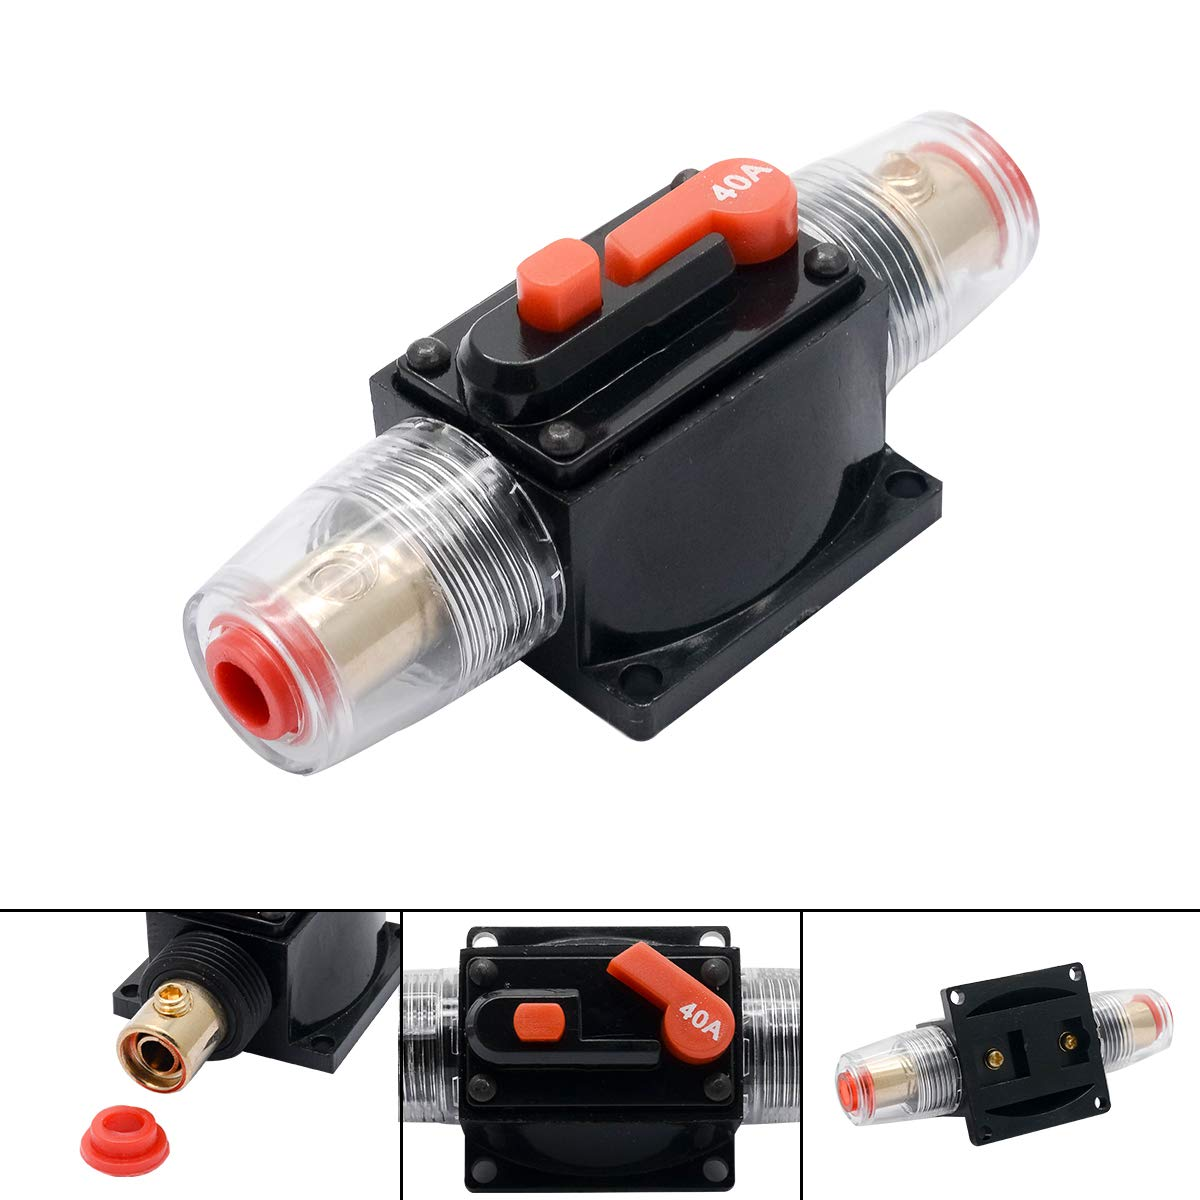 HugeAuto 12V-24V DC Car Audio Inline Circuit Breaker Fuse Block for Auto Motor Car Marine Boat Audio Solar Inverter System Protection 20 Amp Circuit Breaker with Manual Reset